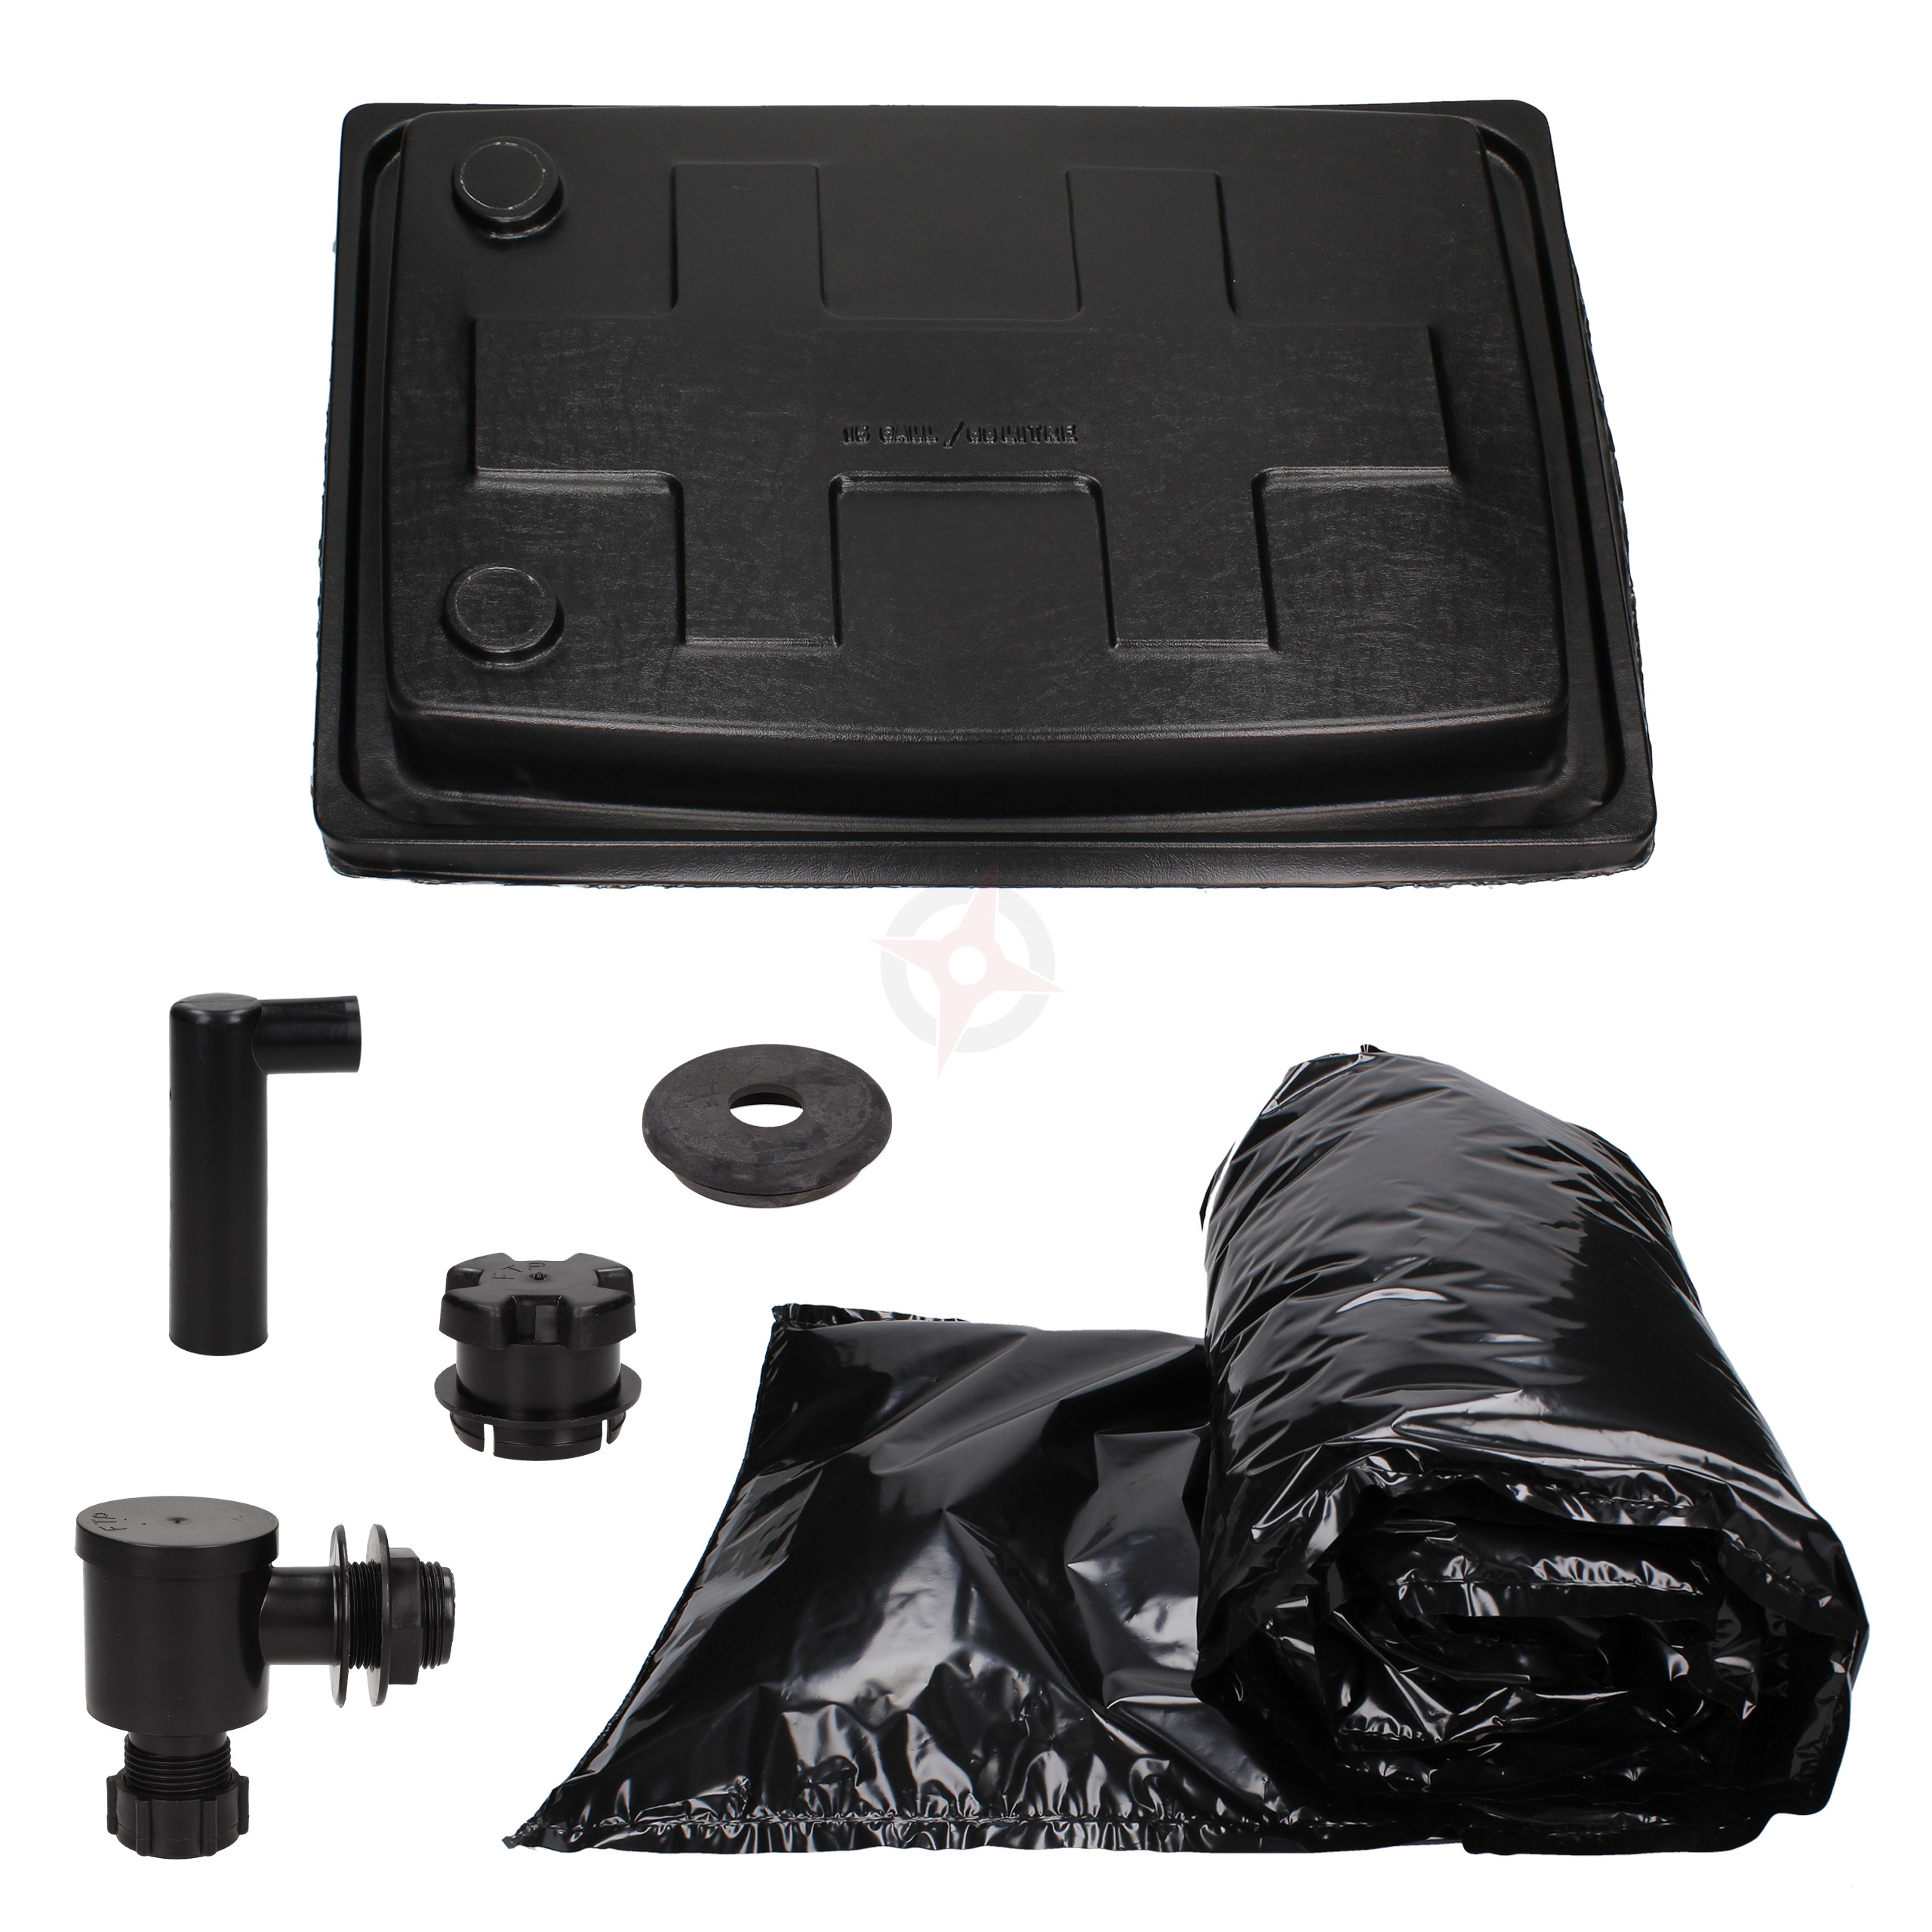 Byelaw 30 kit for a Rectangular 20 Gallon Loft Tank